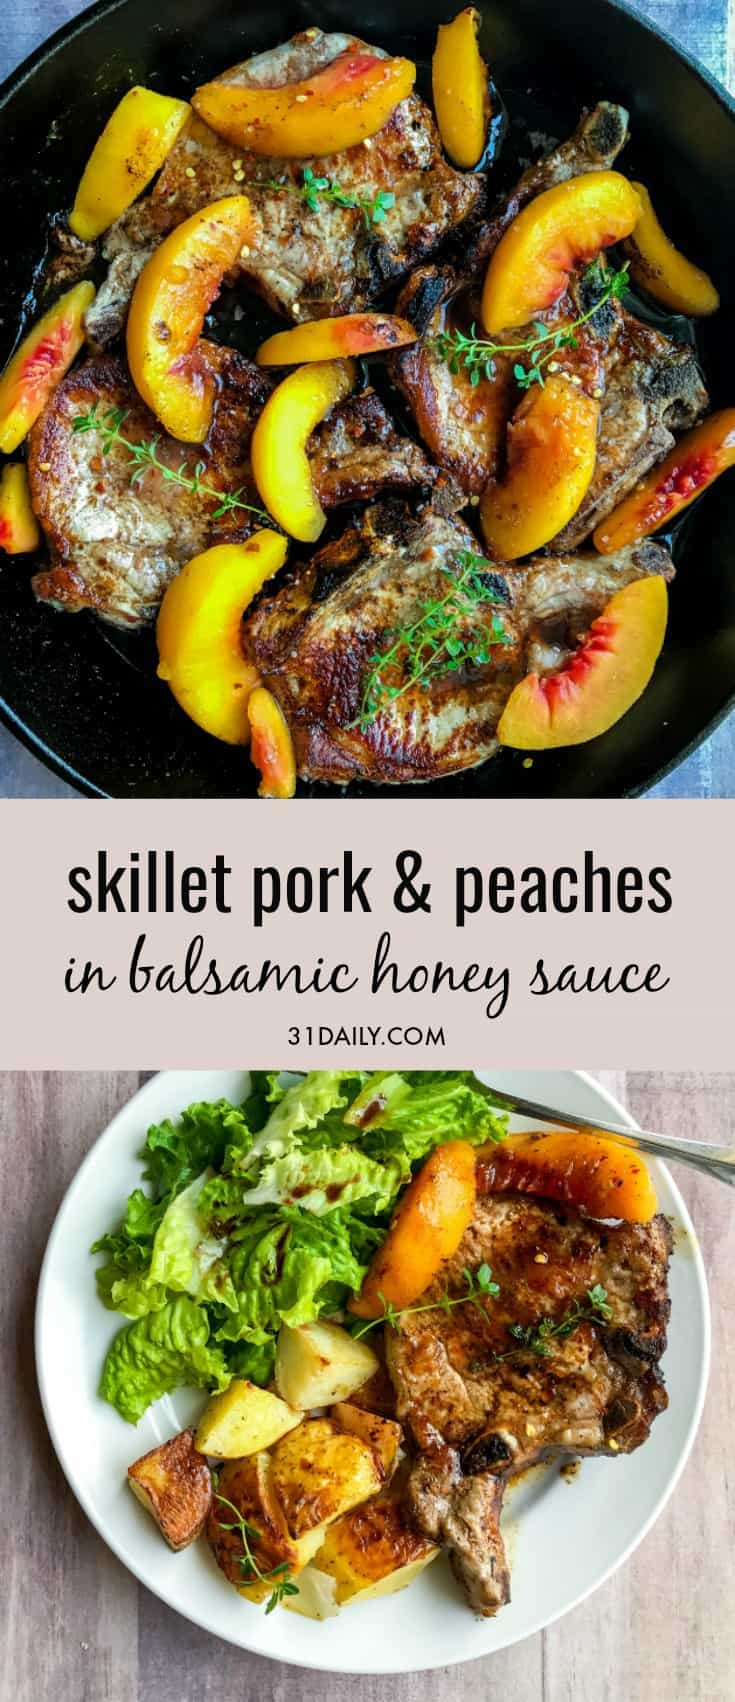 Skillet Pork Chops and Peaches with Balsamic Honey Sauce   31Daily.com